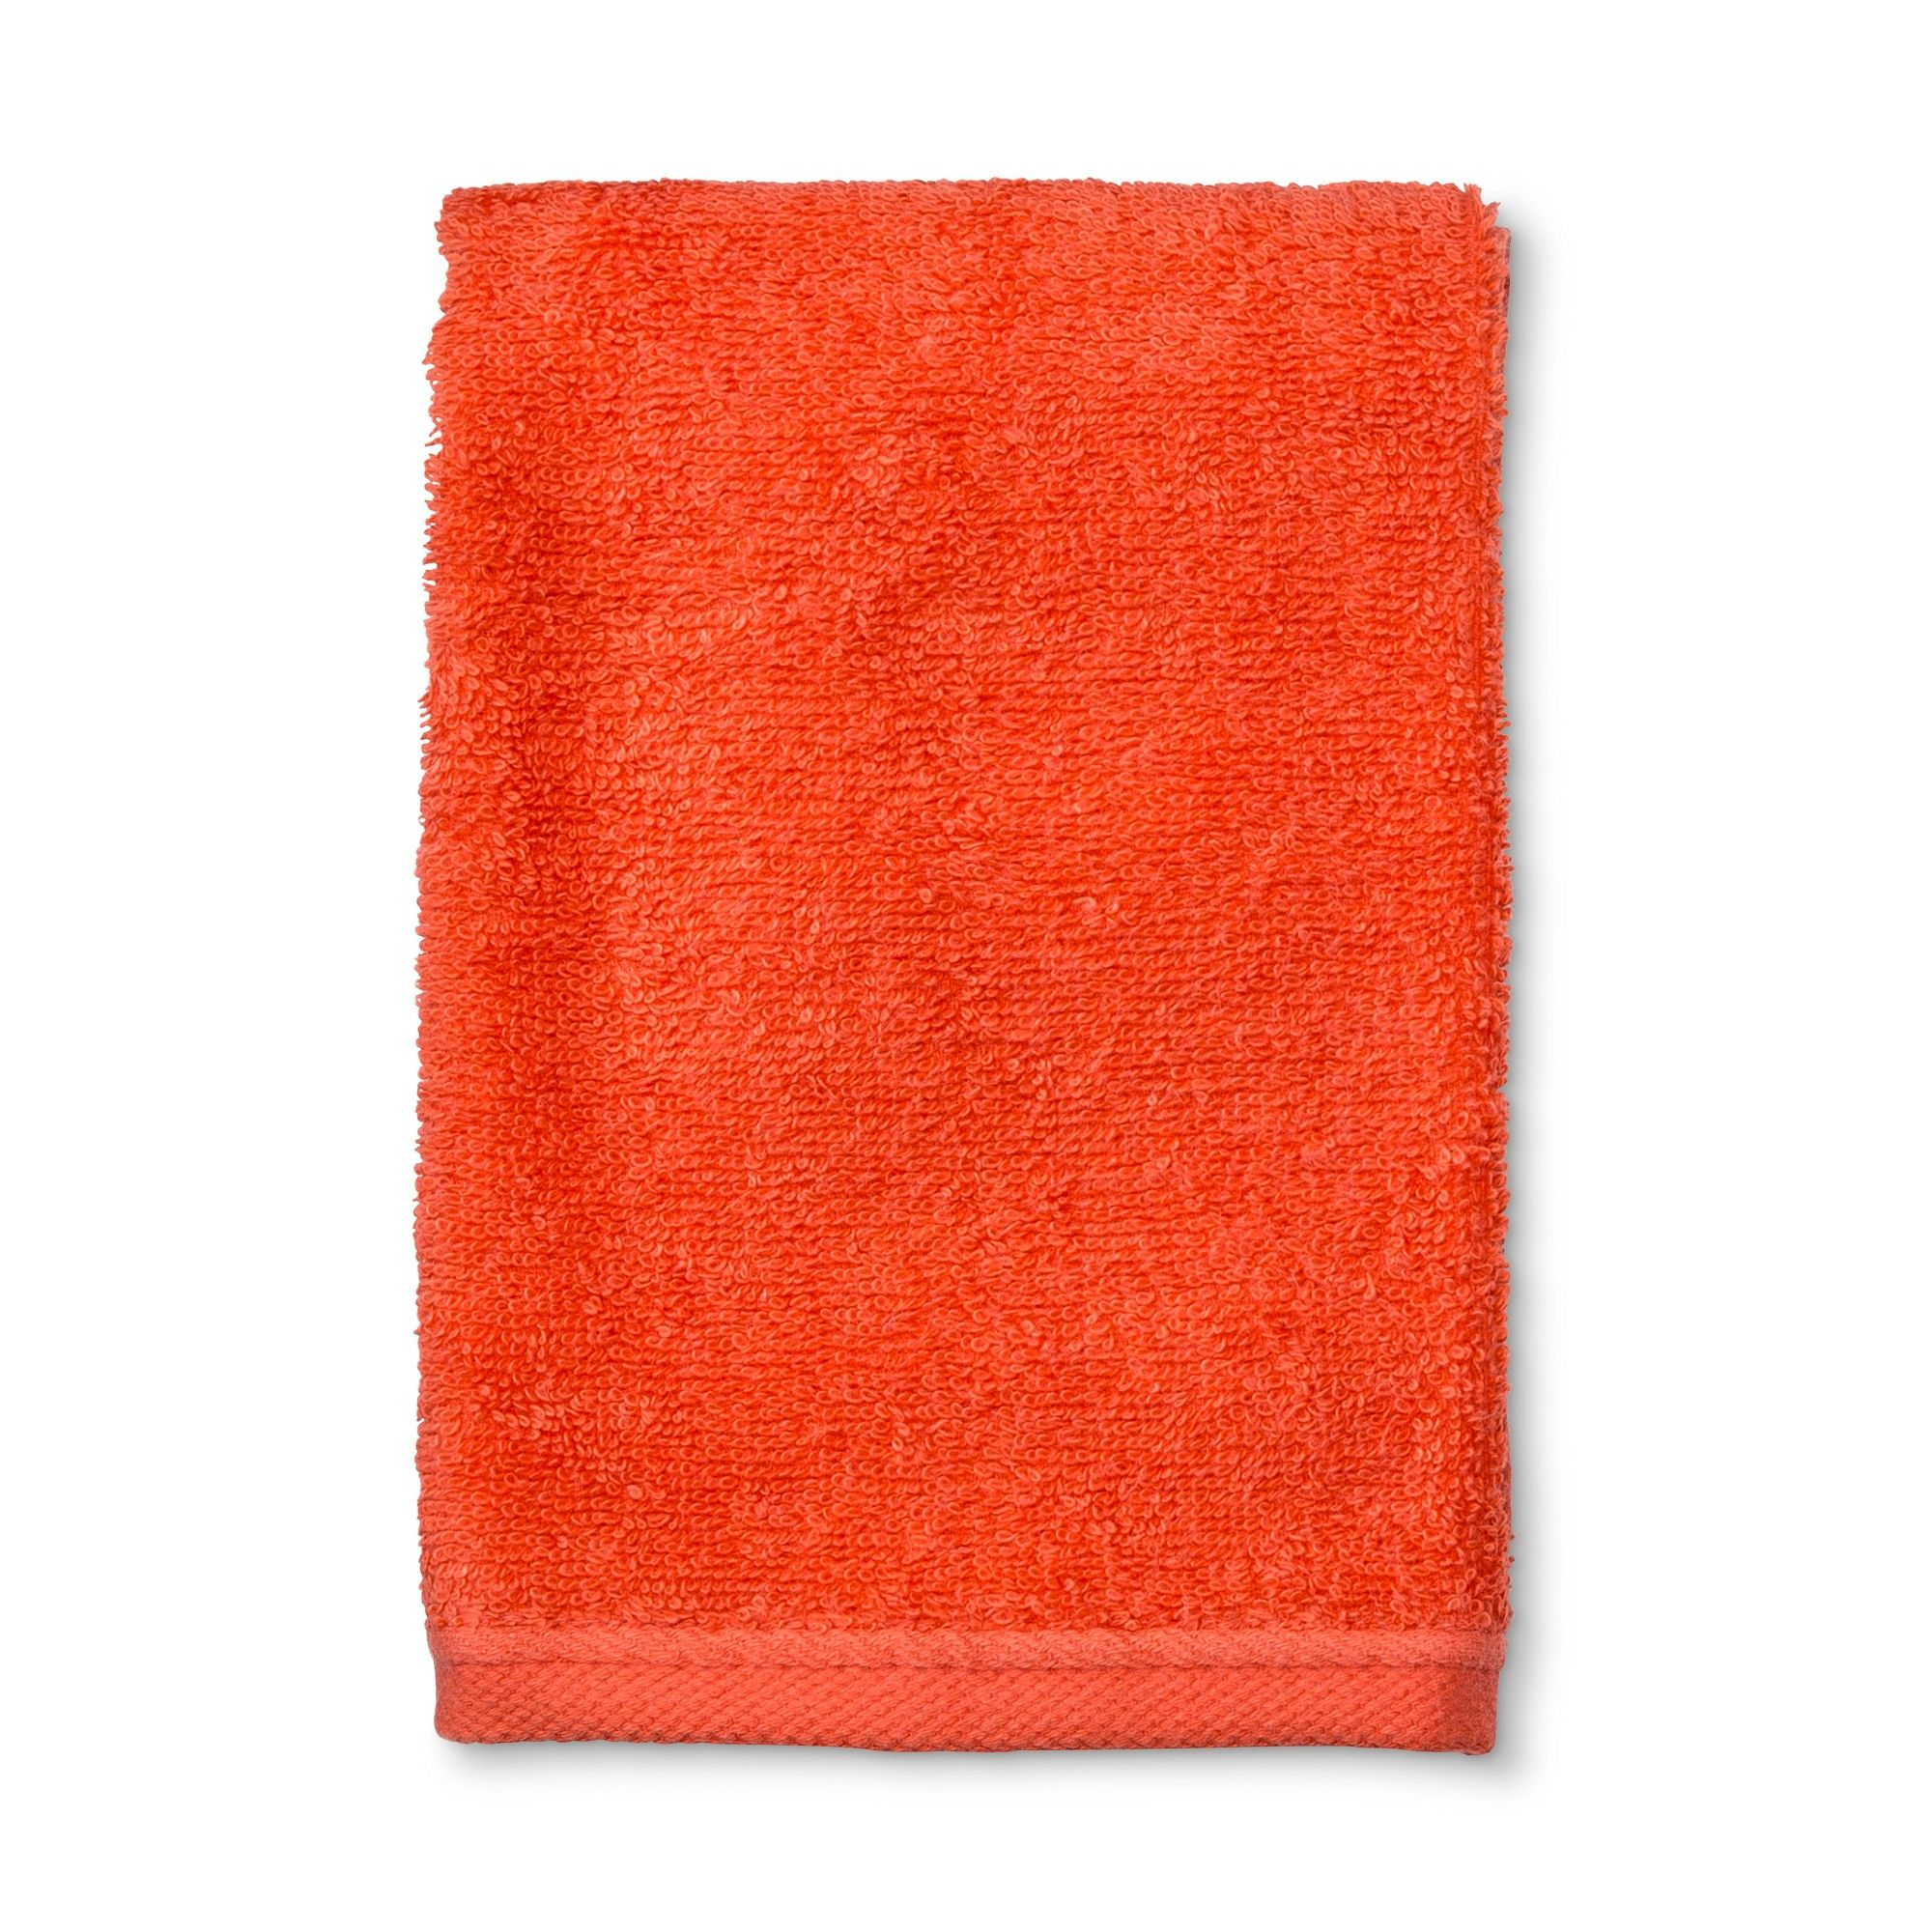 Solid Hand Towel Dreamy Tangerine Room Essentials